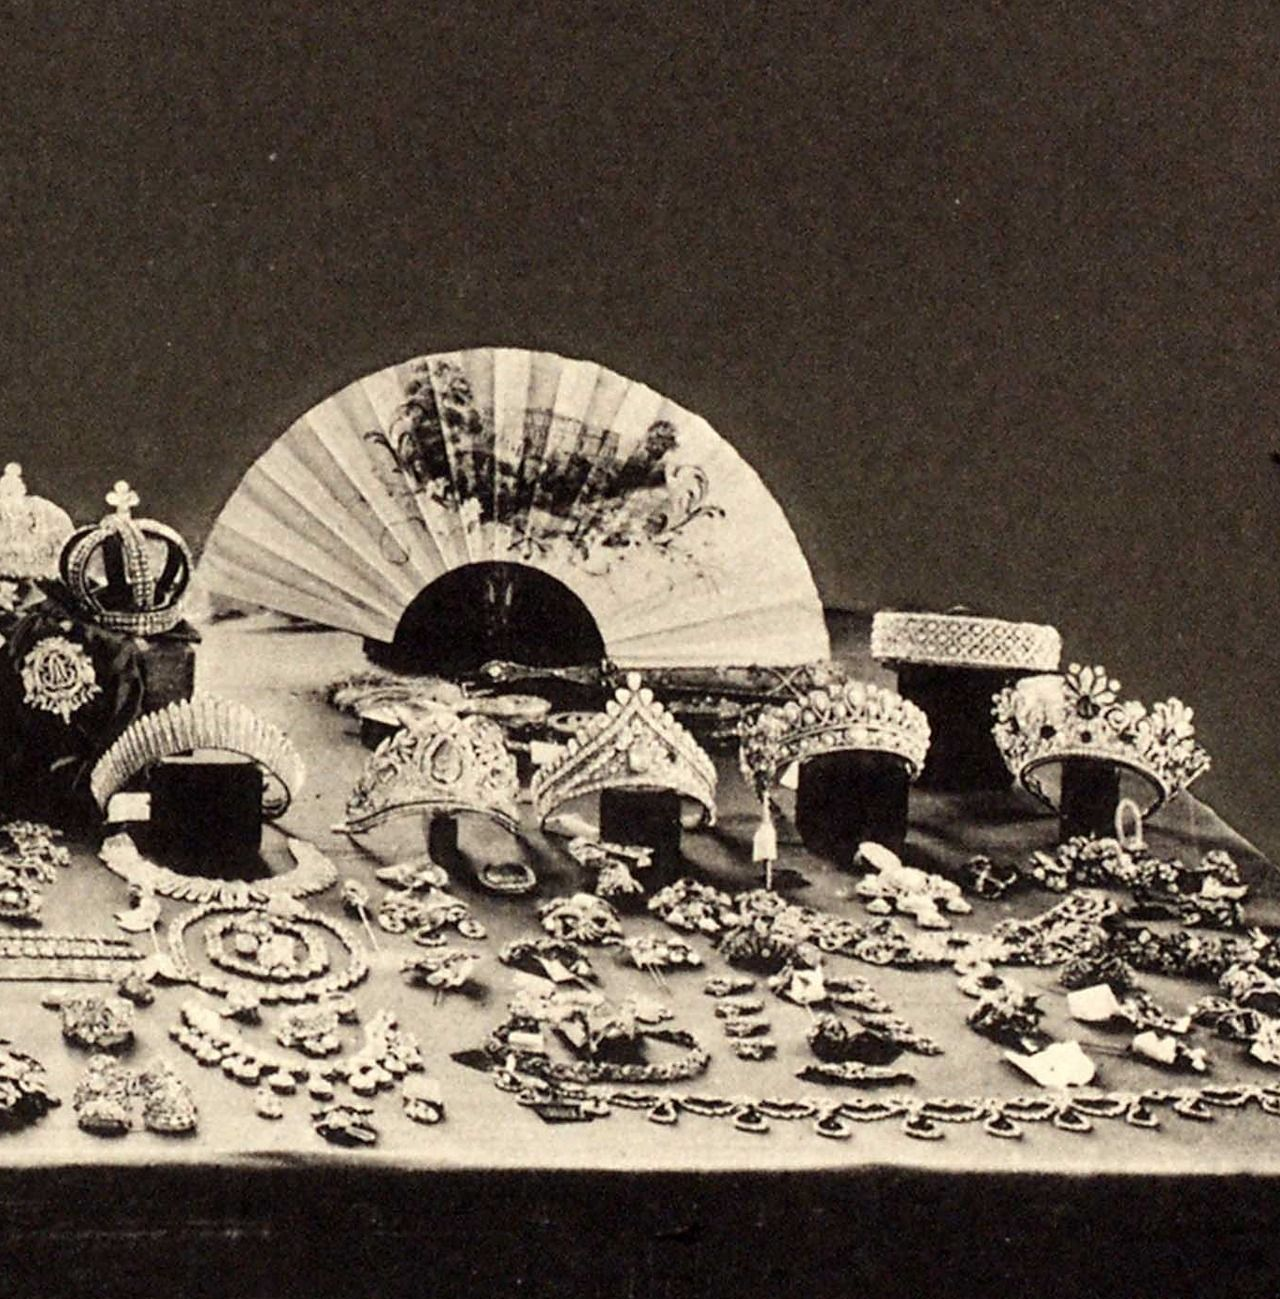 A 1925 photo of the Russian Crown Jewels after the revolution.